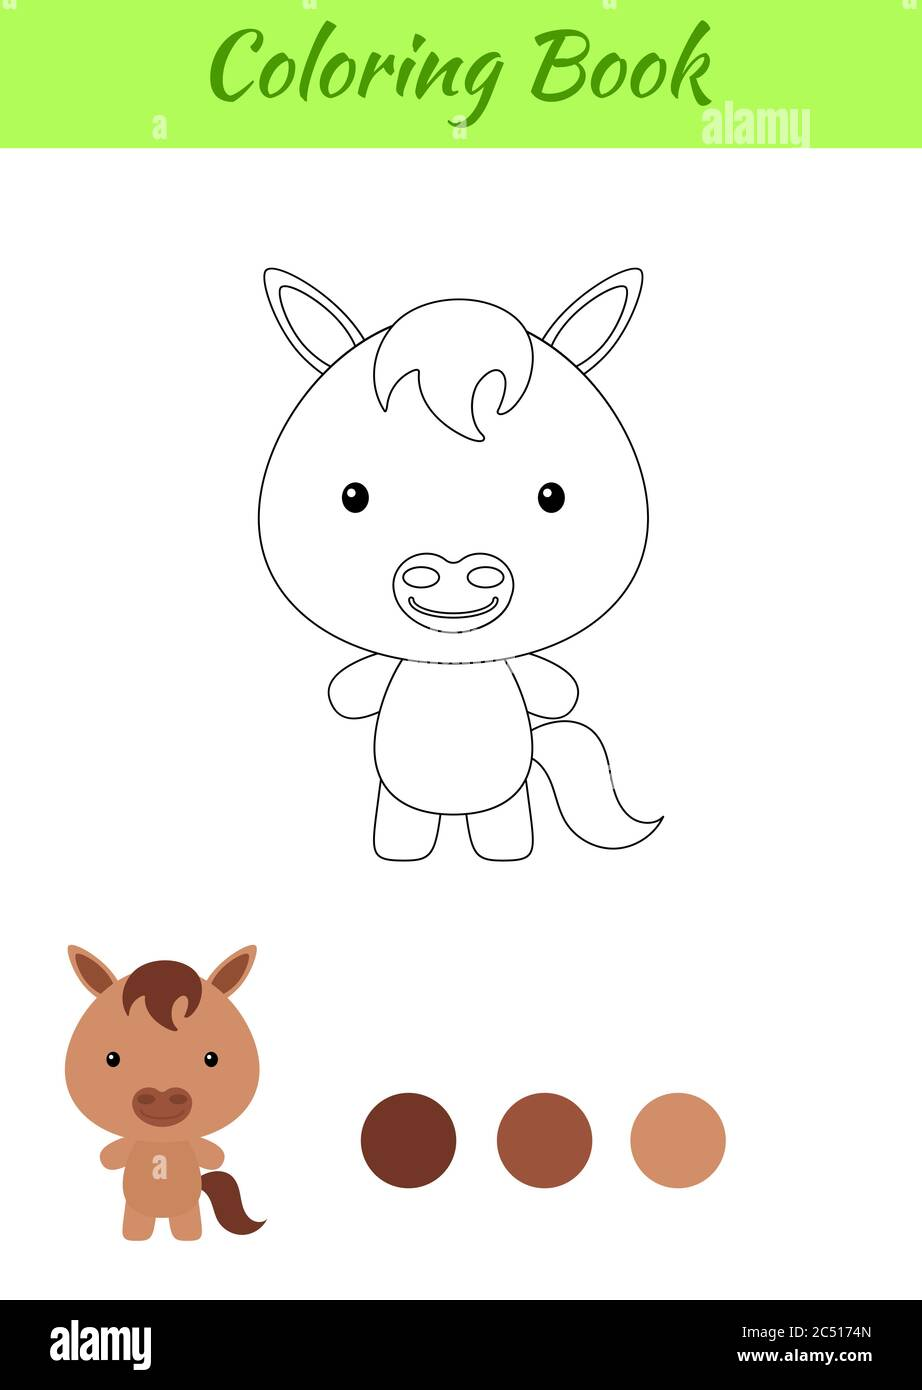 Coloring Page Happy Little Baby Horse Coloring Book For Kids Educational Activity For Preschool Years Kids And Toddlers With Cute Animal Stock Vector Image Art Alamy